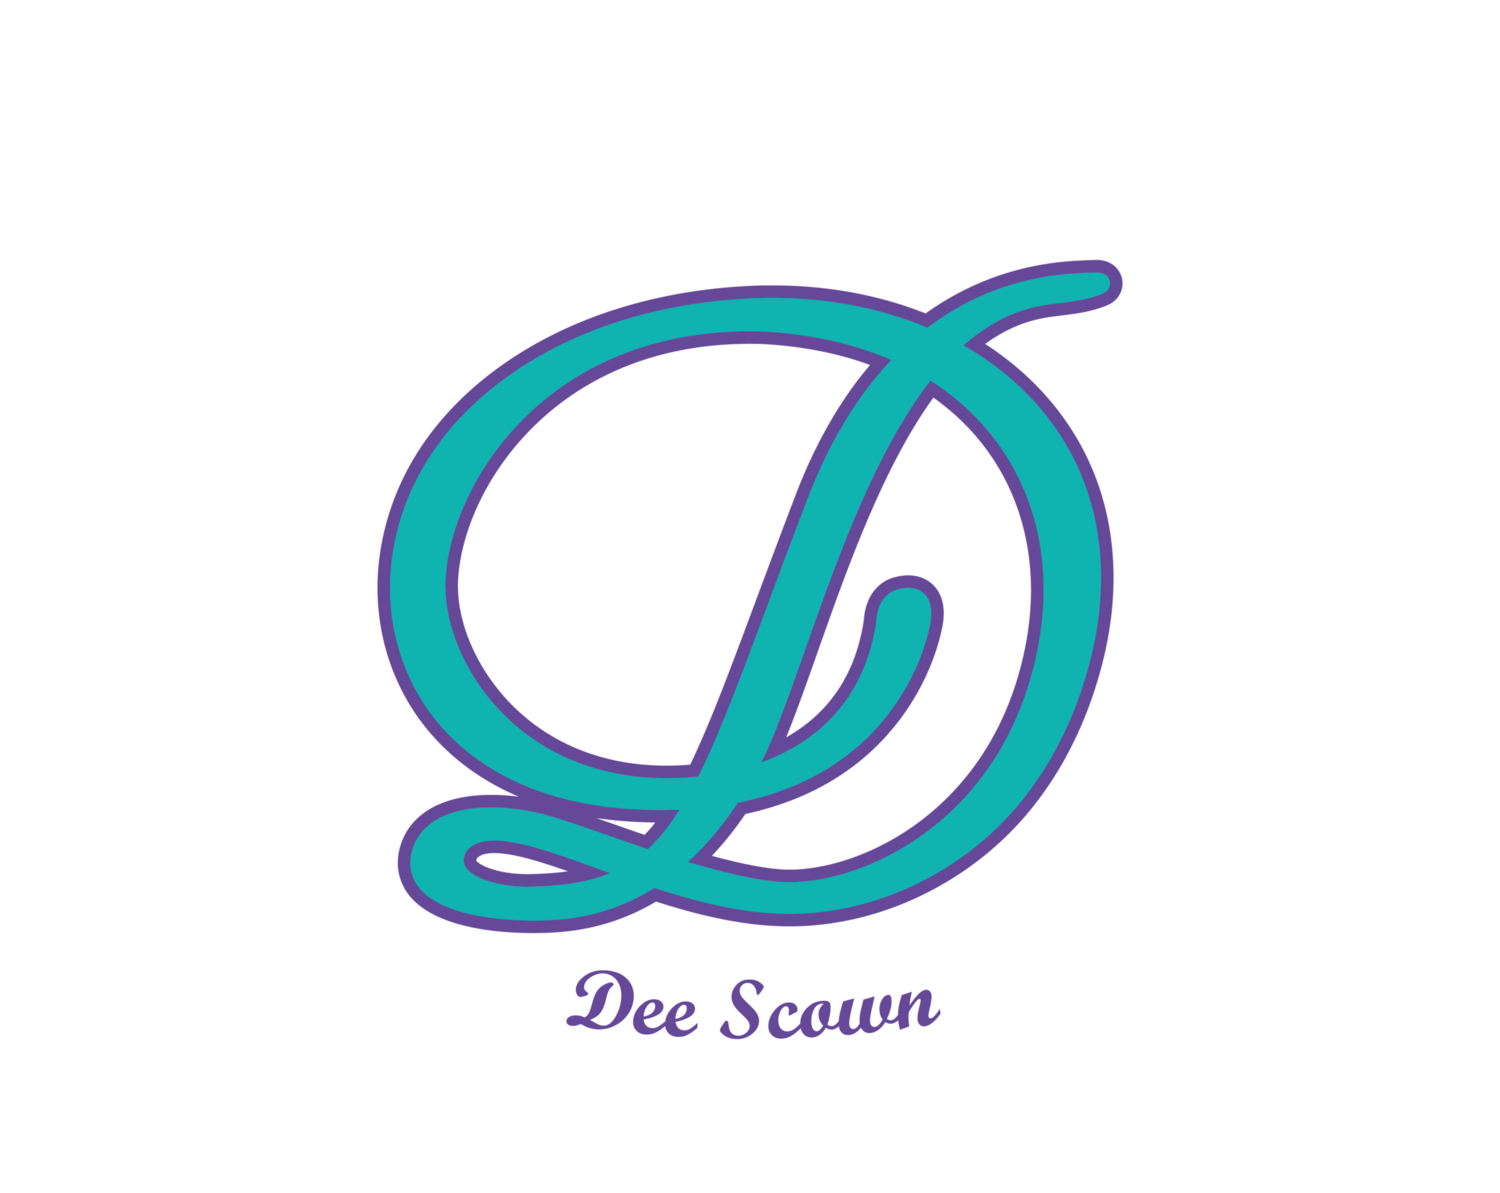 Dee logo - A list of positive outcomes we are seeing due to this pandemic.